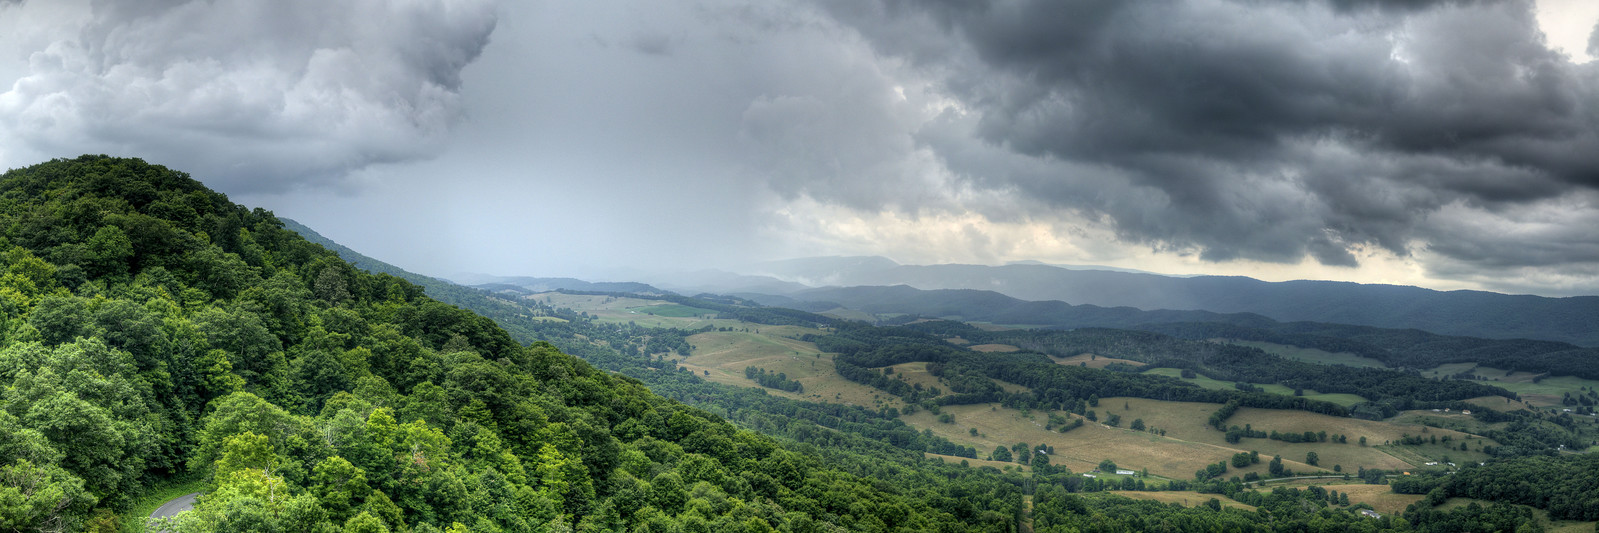 An epic summer thunderstorm rolls across the valley below the Big Walker Lookout, a locally-owned 100' observation tower on top of Big Walker Mountain along scenic Highway 52, in Wytheville, VA on Wednesday, July 23, 2014. Copyright 2014 Jason Barnette